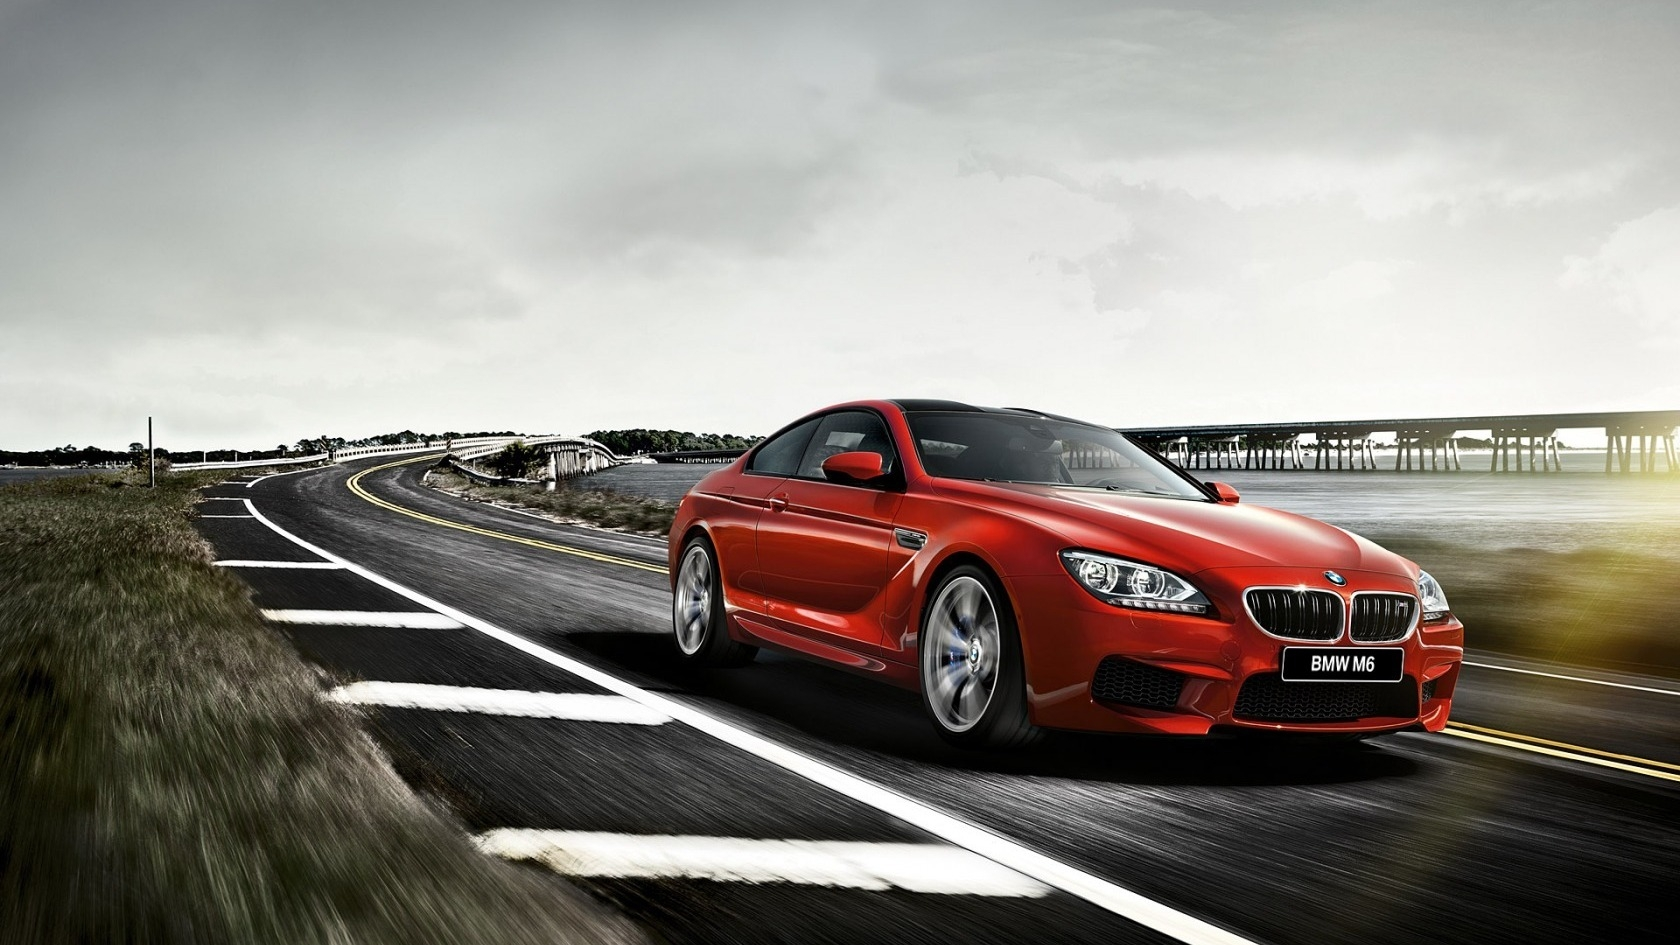 Cute Valentinesday Wallpaper Red Bmw M6 F13 Coupe On Road Gorgeous Car